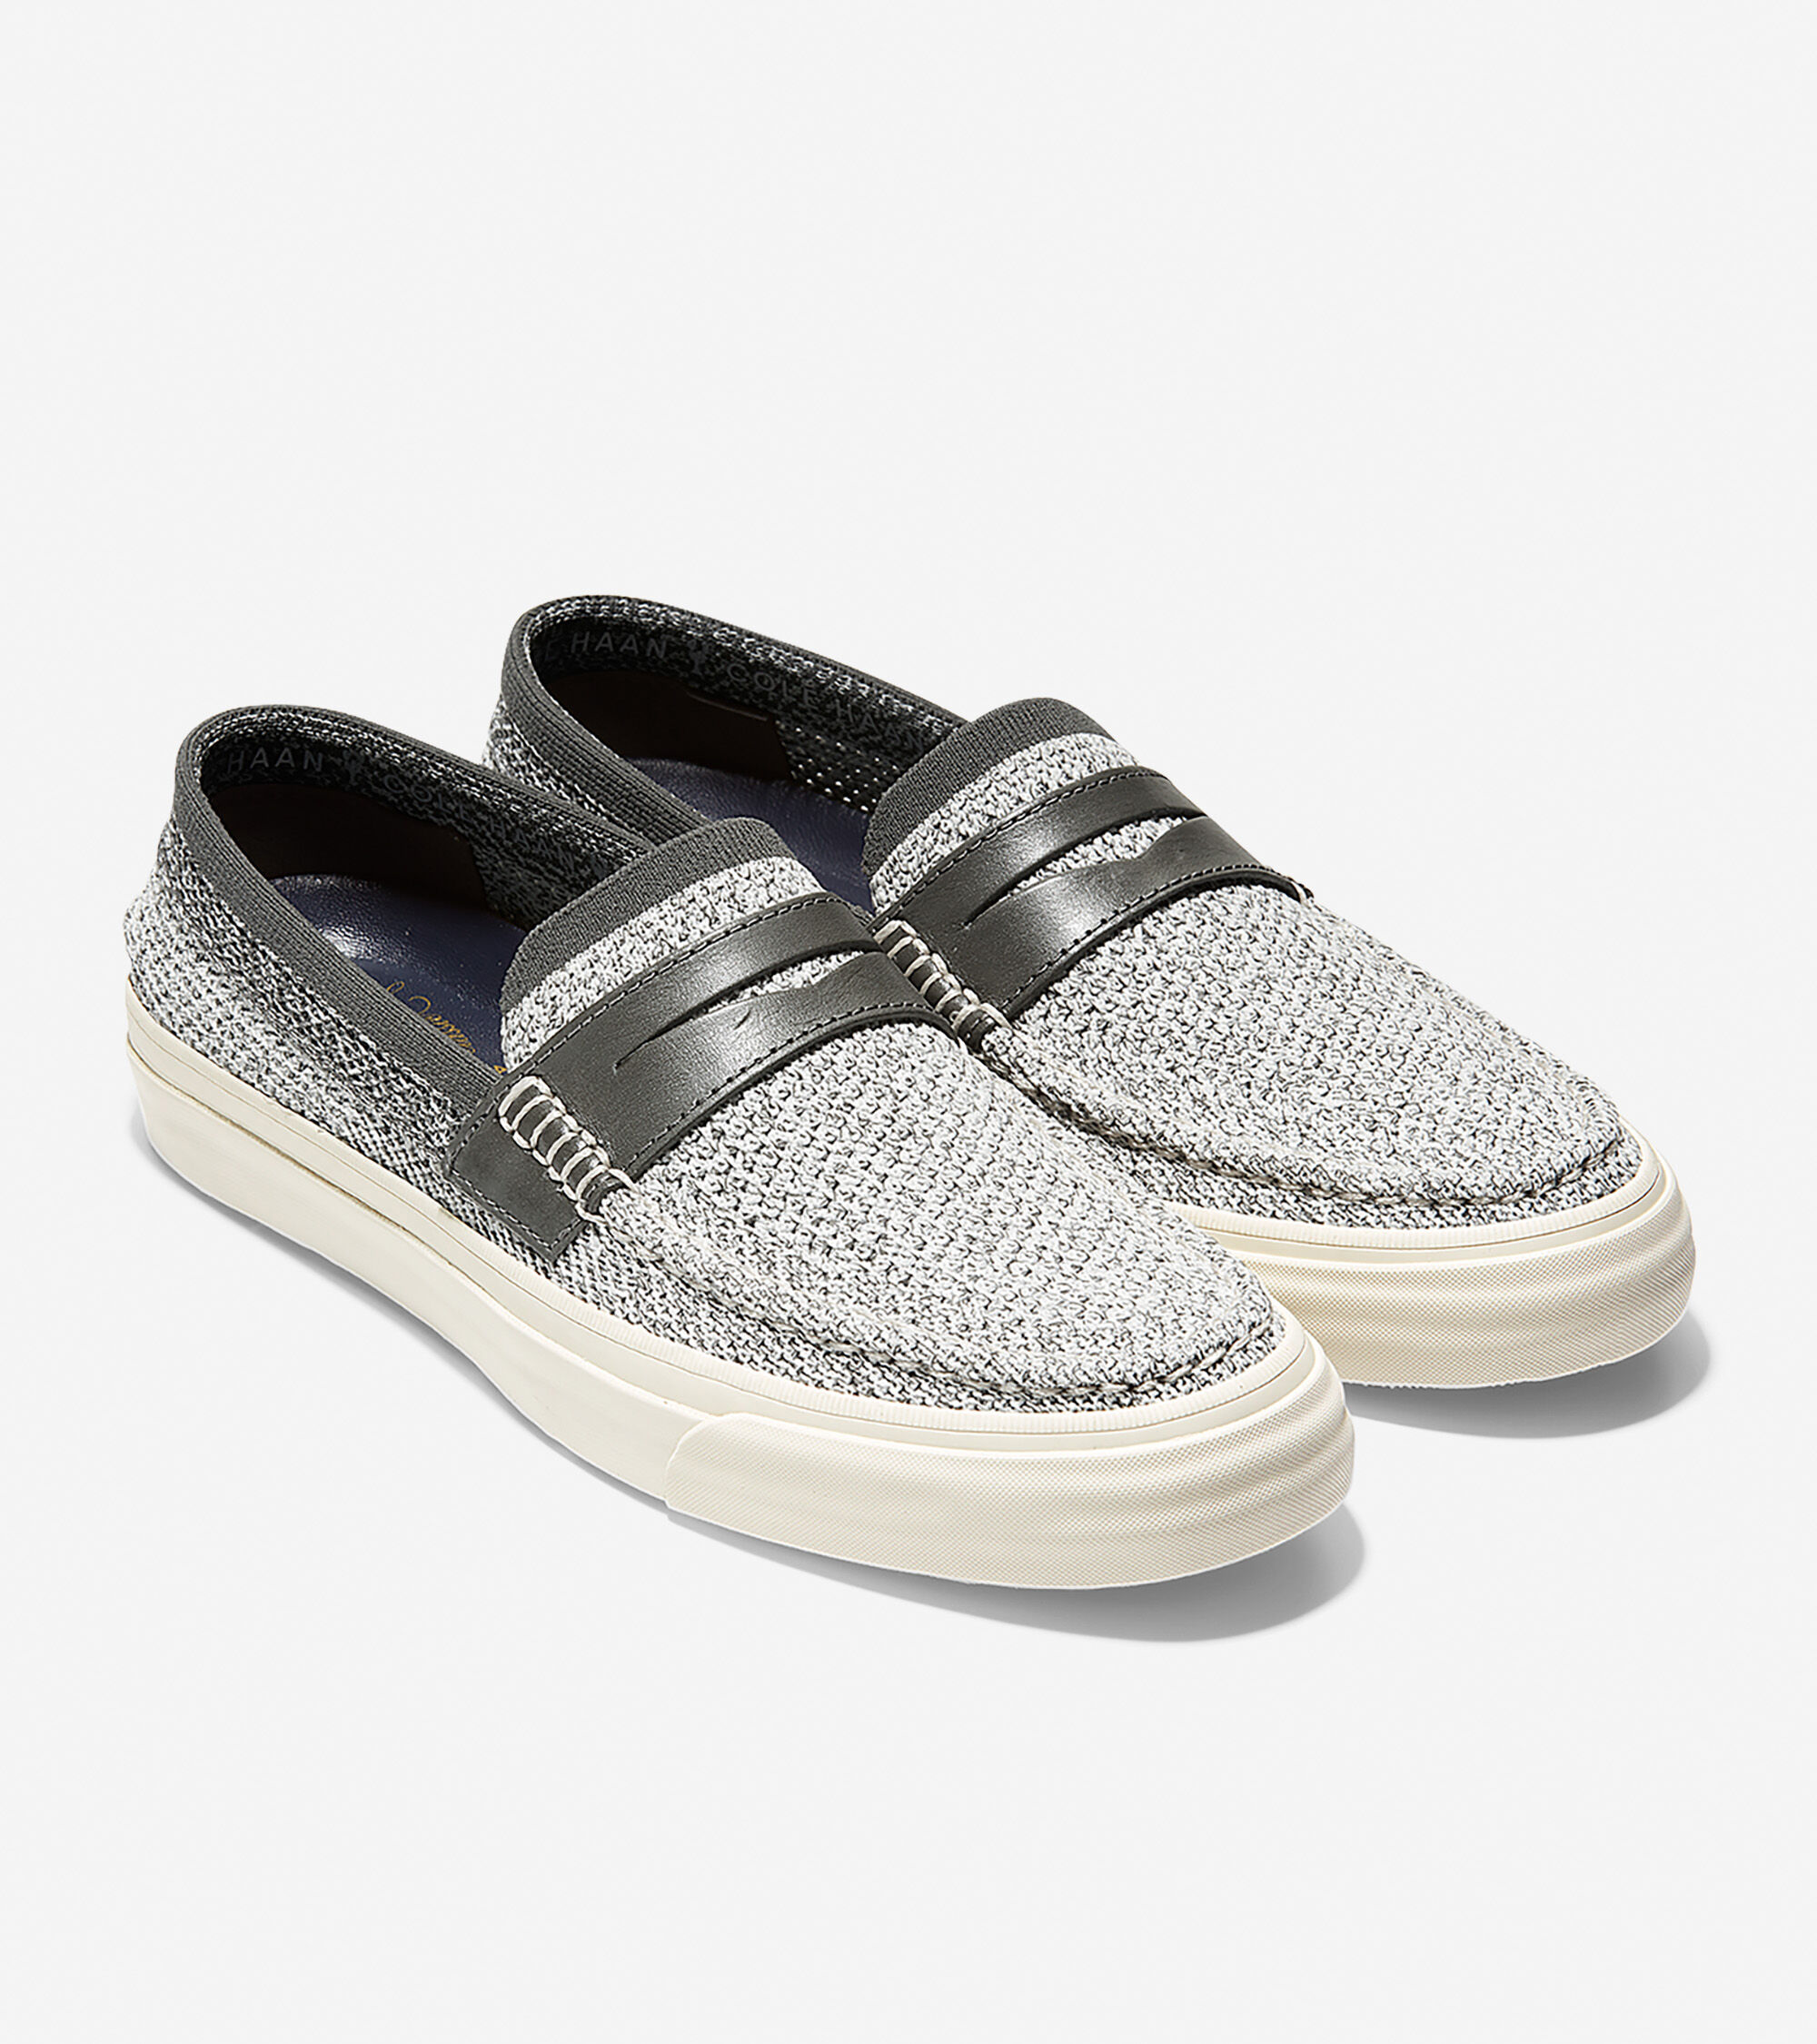 288ac0baa67 Men s Pinch Weekender LX Loafers with Stitchlite in Lunar Rock ...